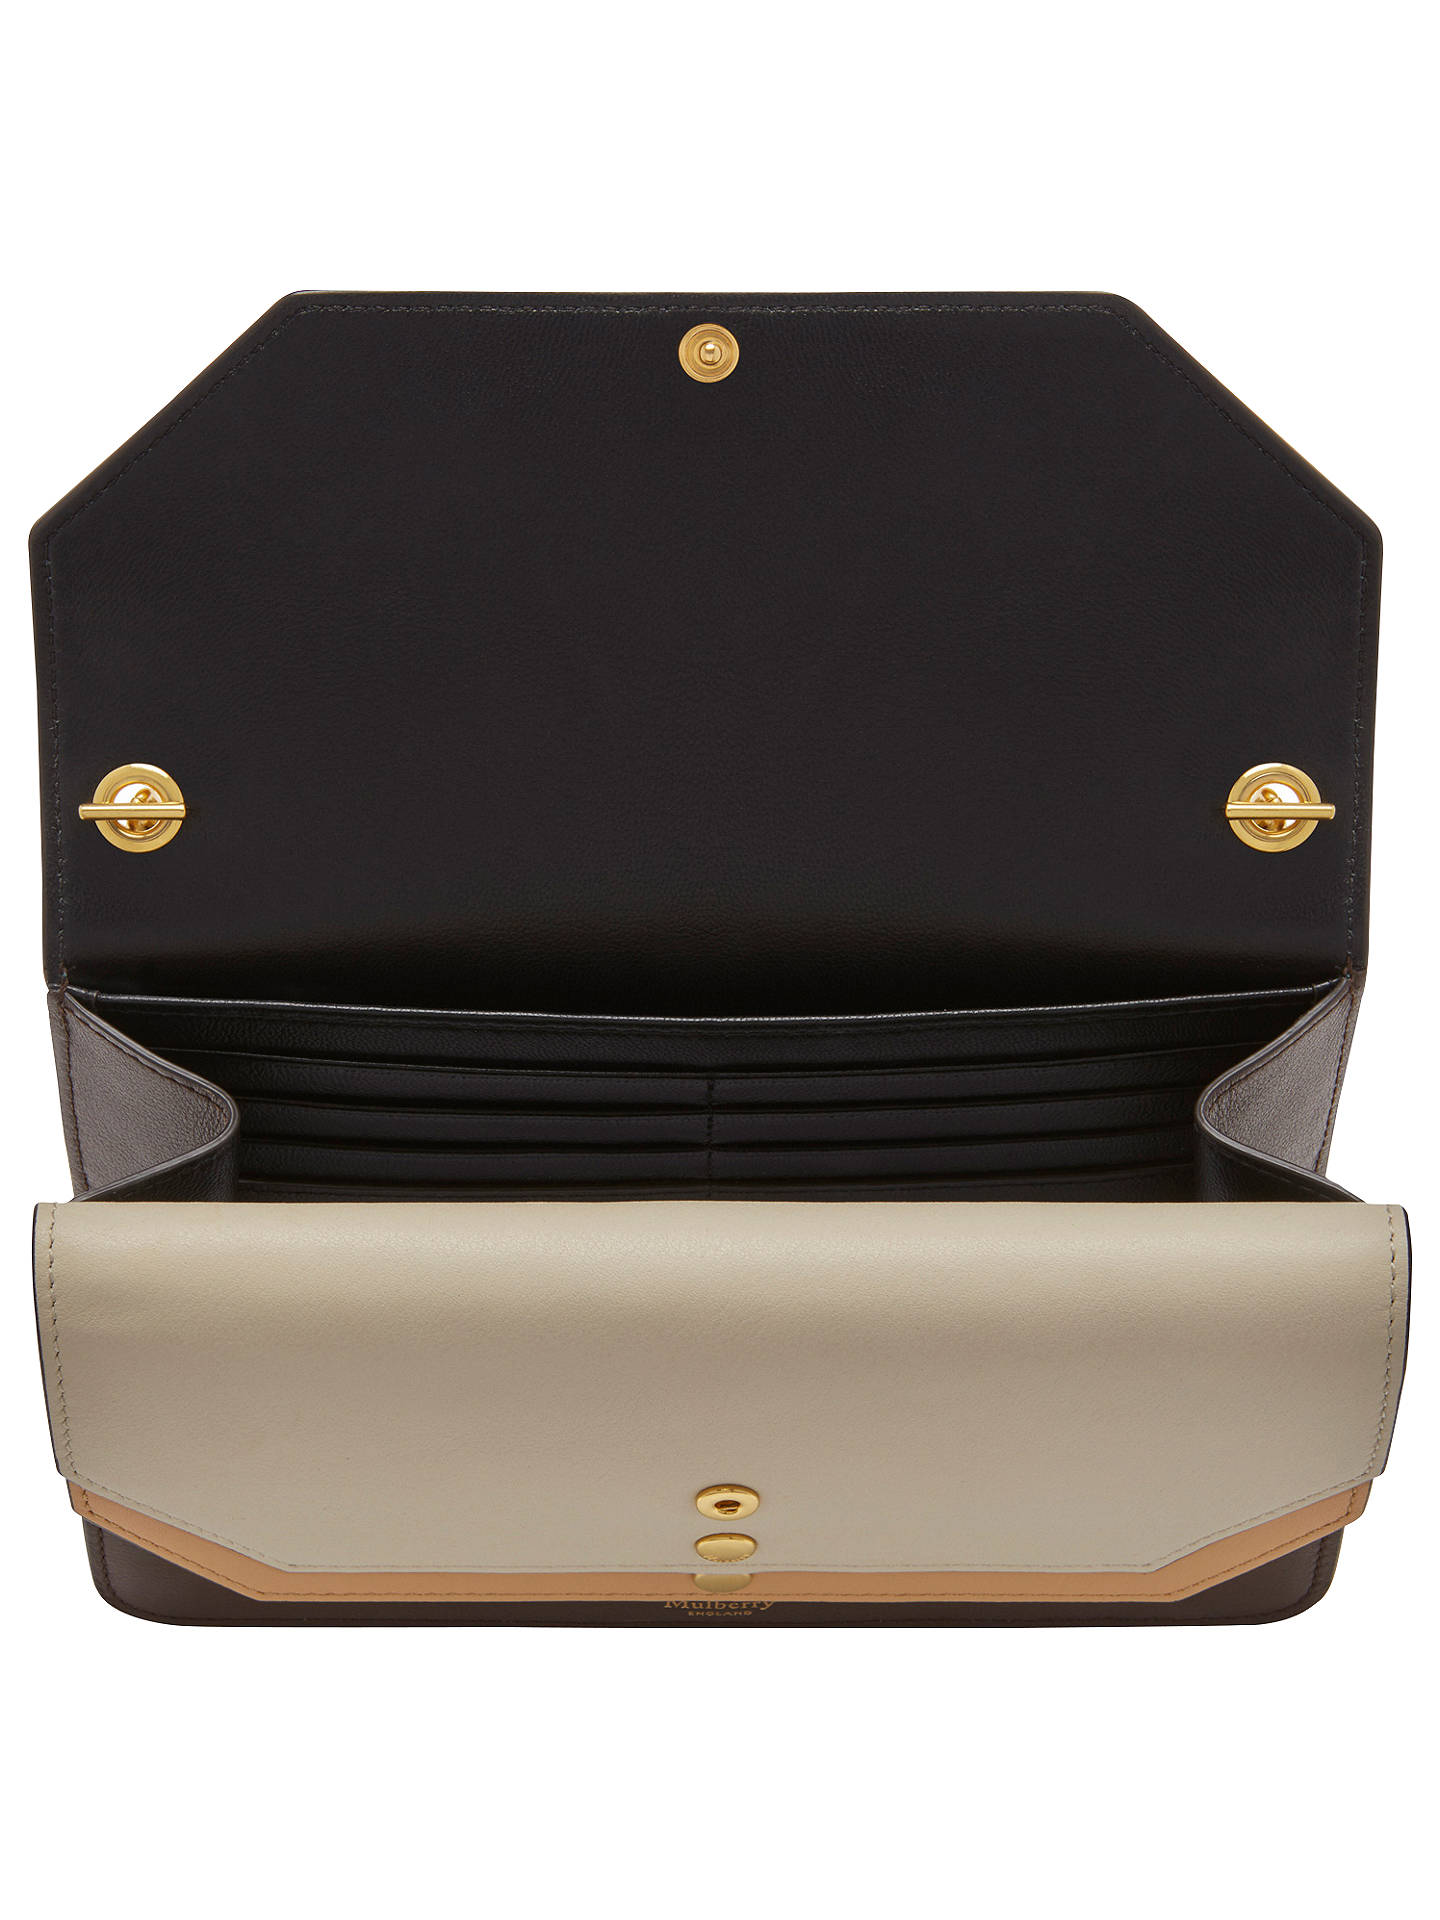 37af105fabb Buy Mulberry Multi-Flap Smooth Calf Leather Clutch Bag, Multi Online at  johnlewis.